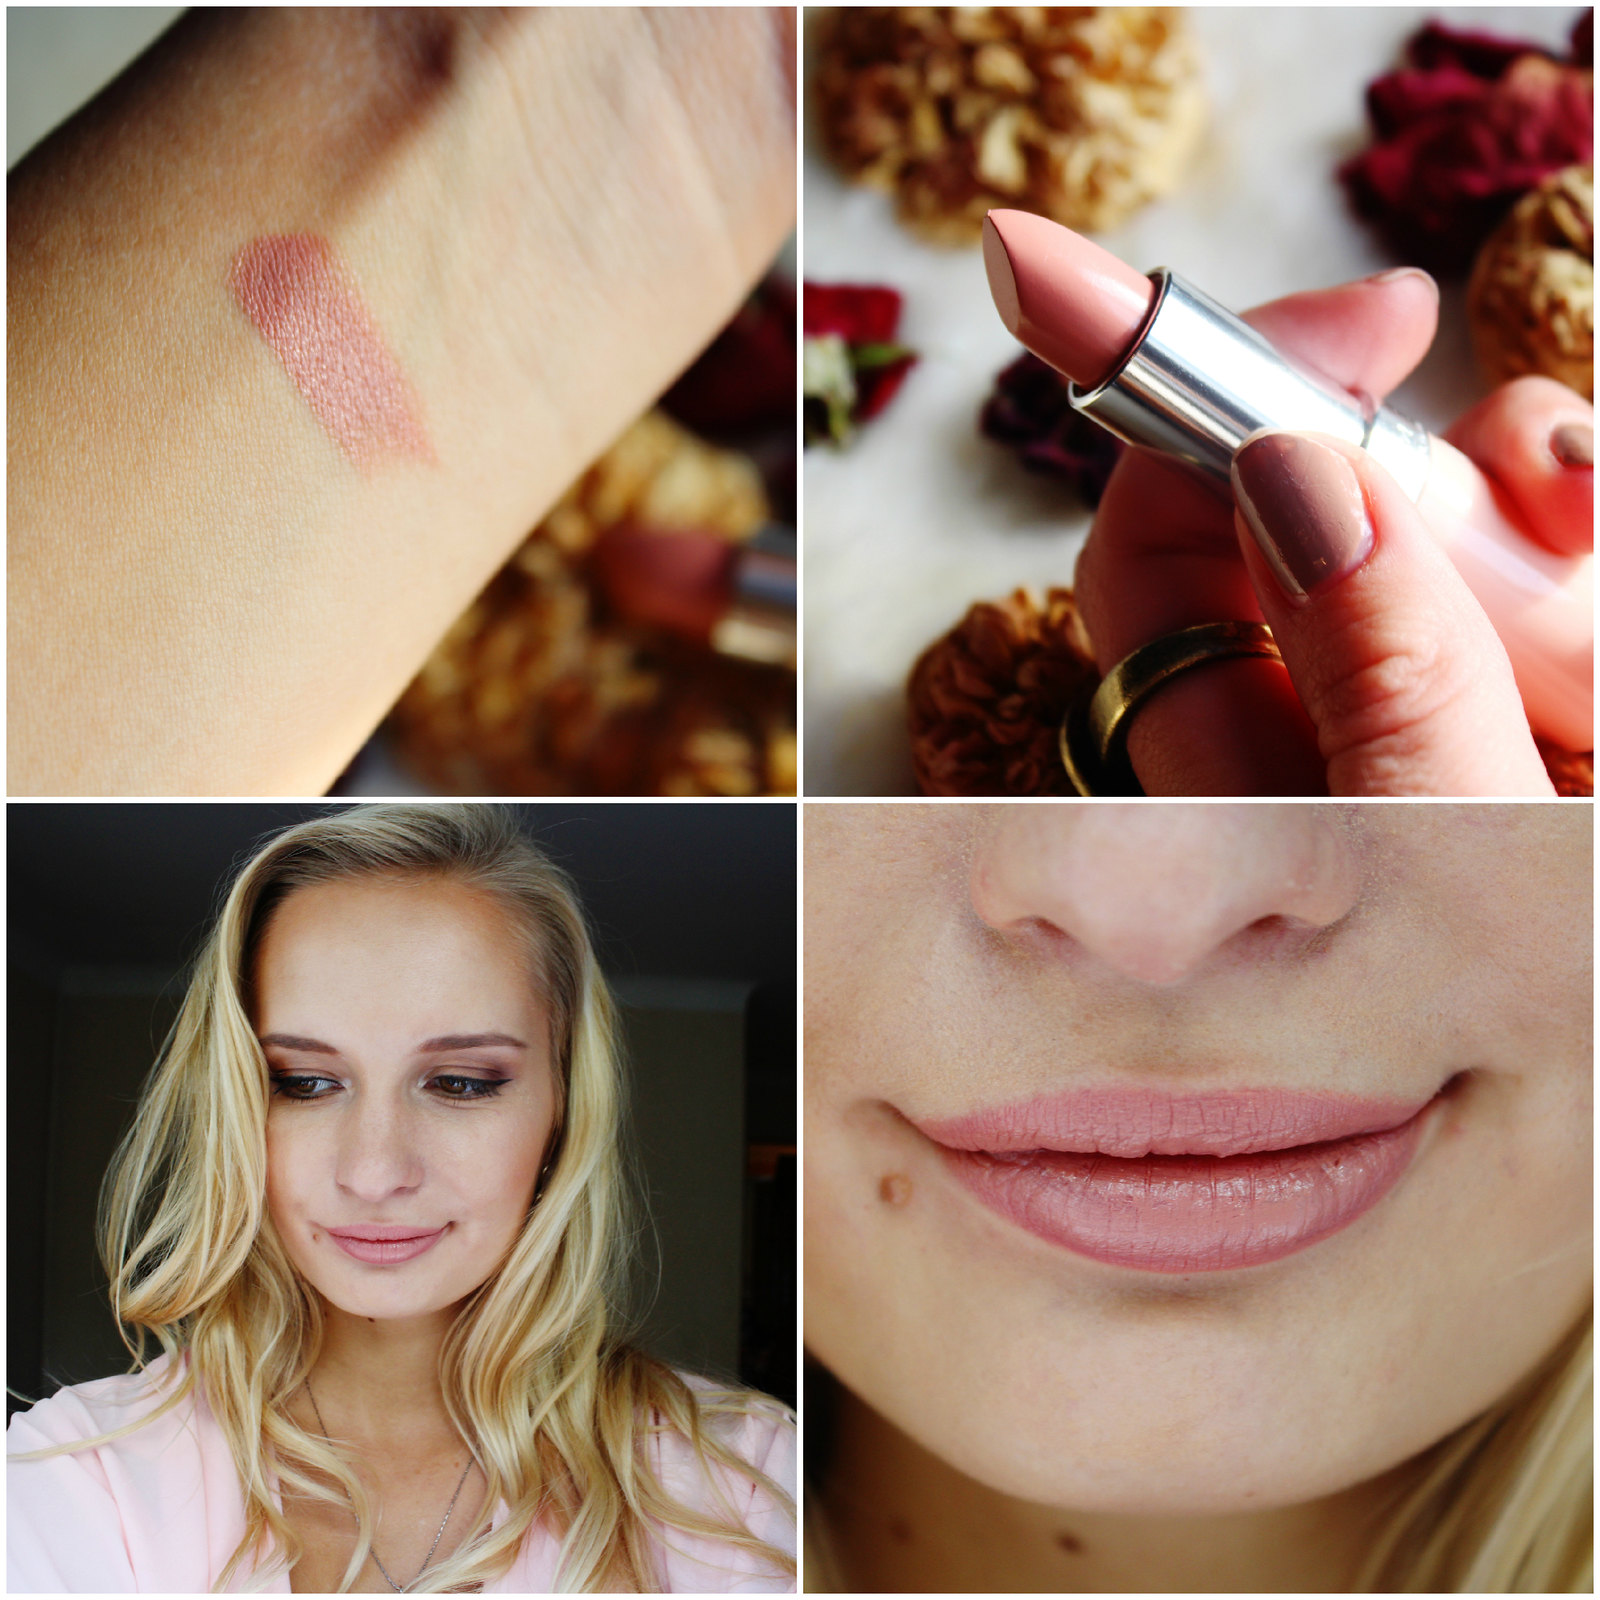 Rimmel Long Lasting Finish Kate Nude Lipstick collection review shade 42